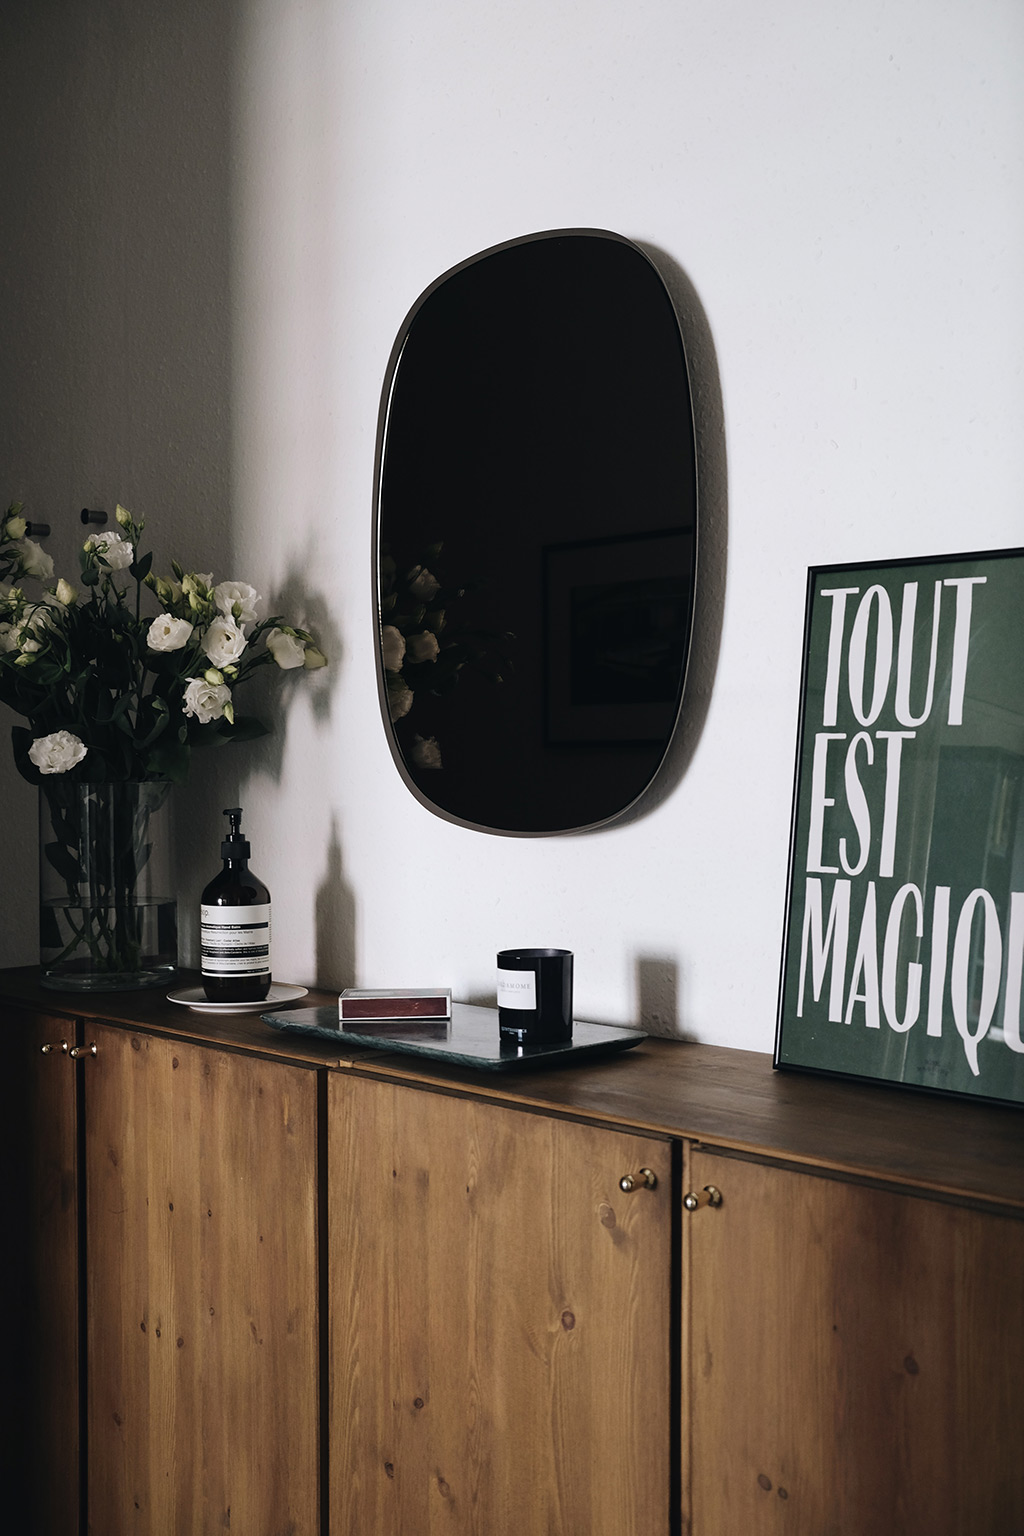 staining ikea ivar cabinets - hotel magique print candle and flowers